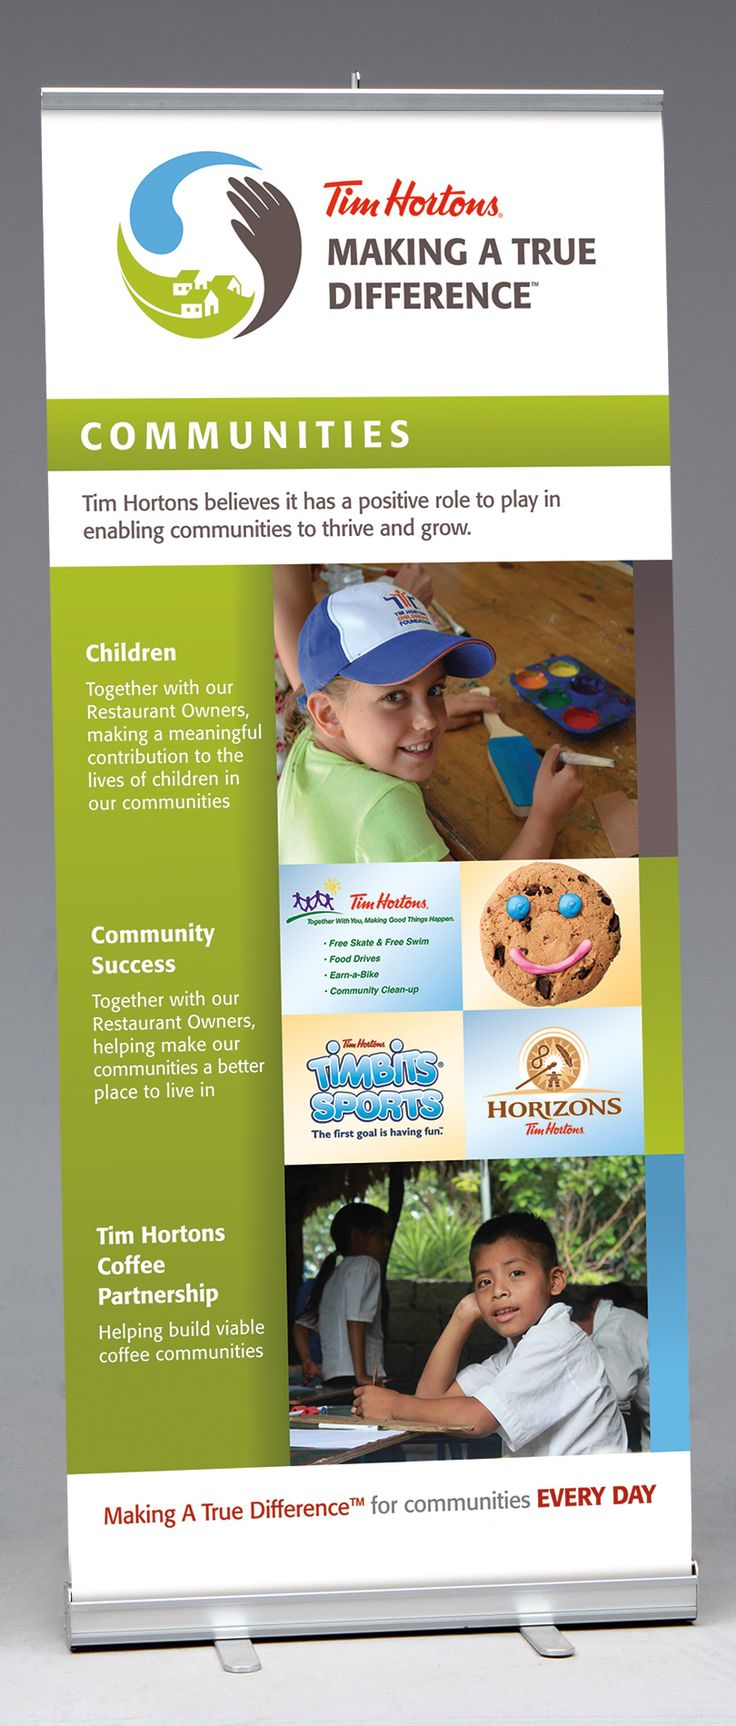 Retractable Banner Stand for Tim Hortons Community Involvement Promotion [Bcreative - Marketing Support Services]                                                                                                                                                                                 More